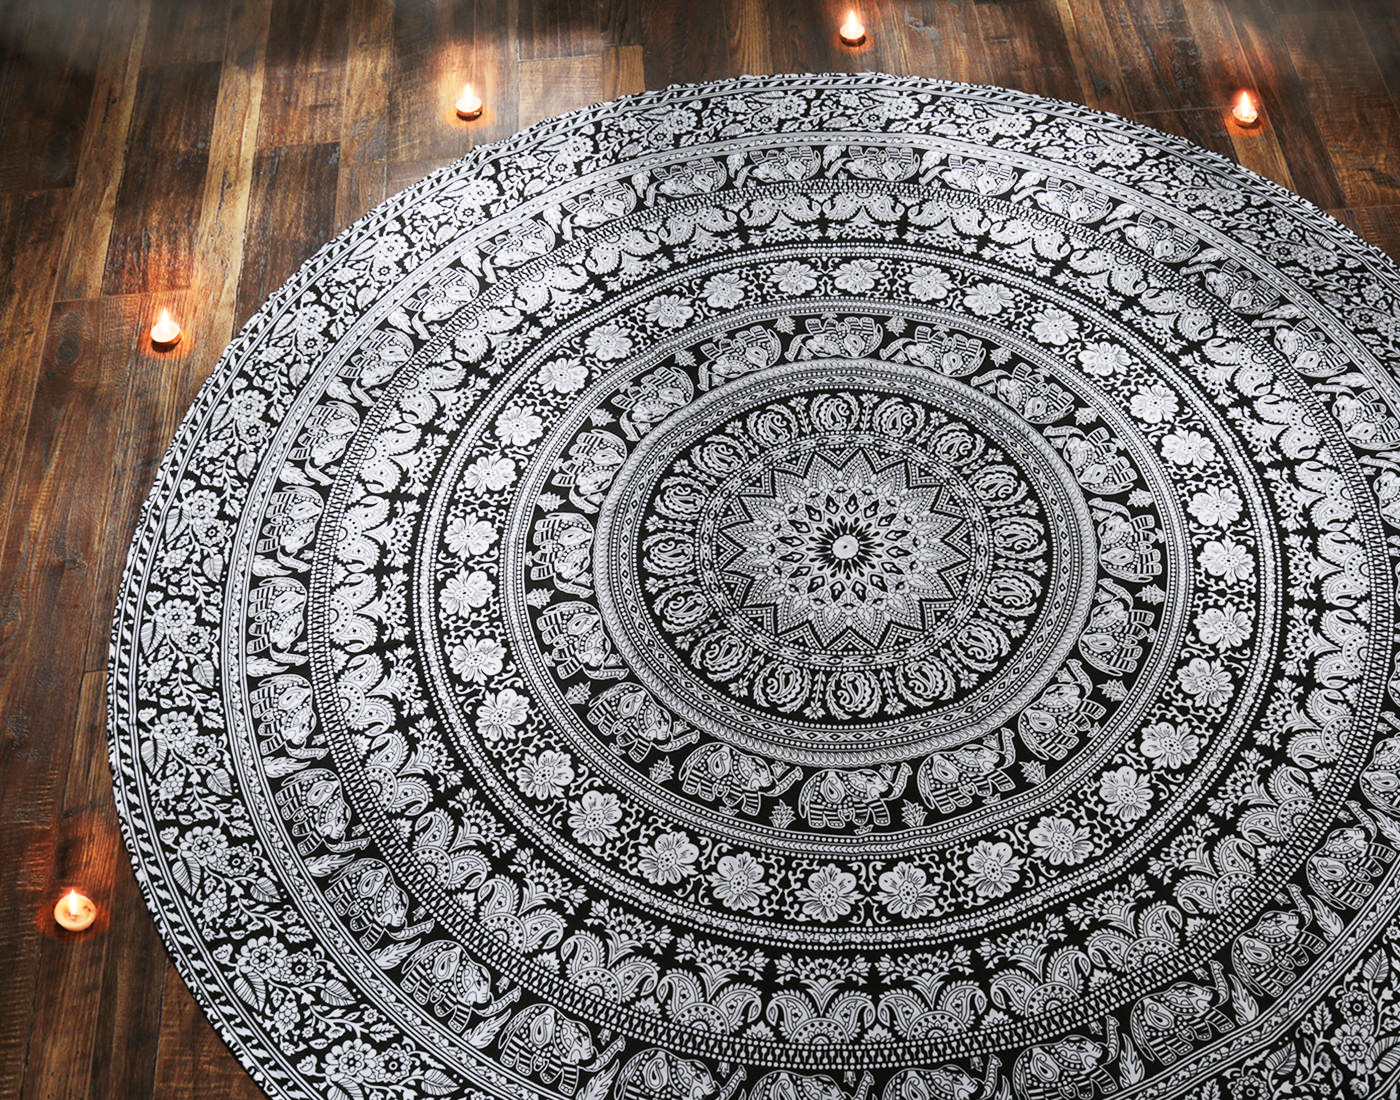 Black & White Elephant Mandala Hippie Tapestry Twin Indian Throw Beach College Dorm Bohemian Wall Hanging Boho BedSHeet... by Rajrang